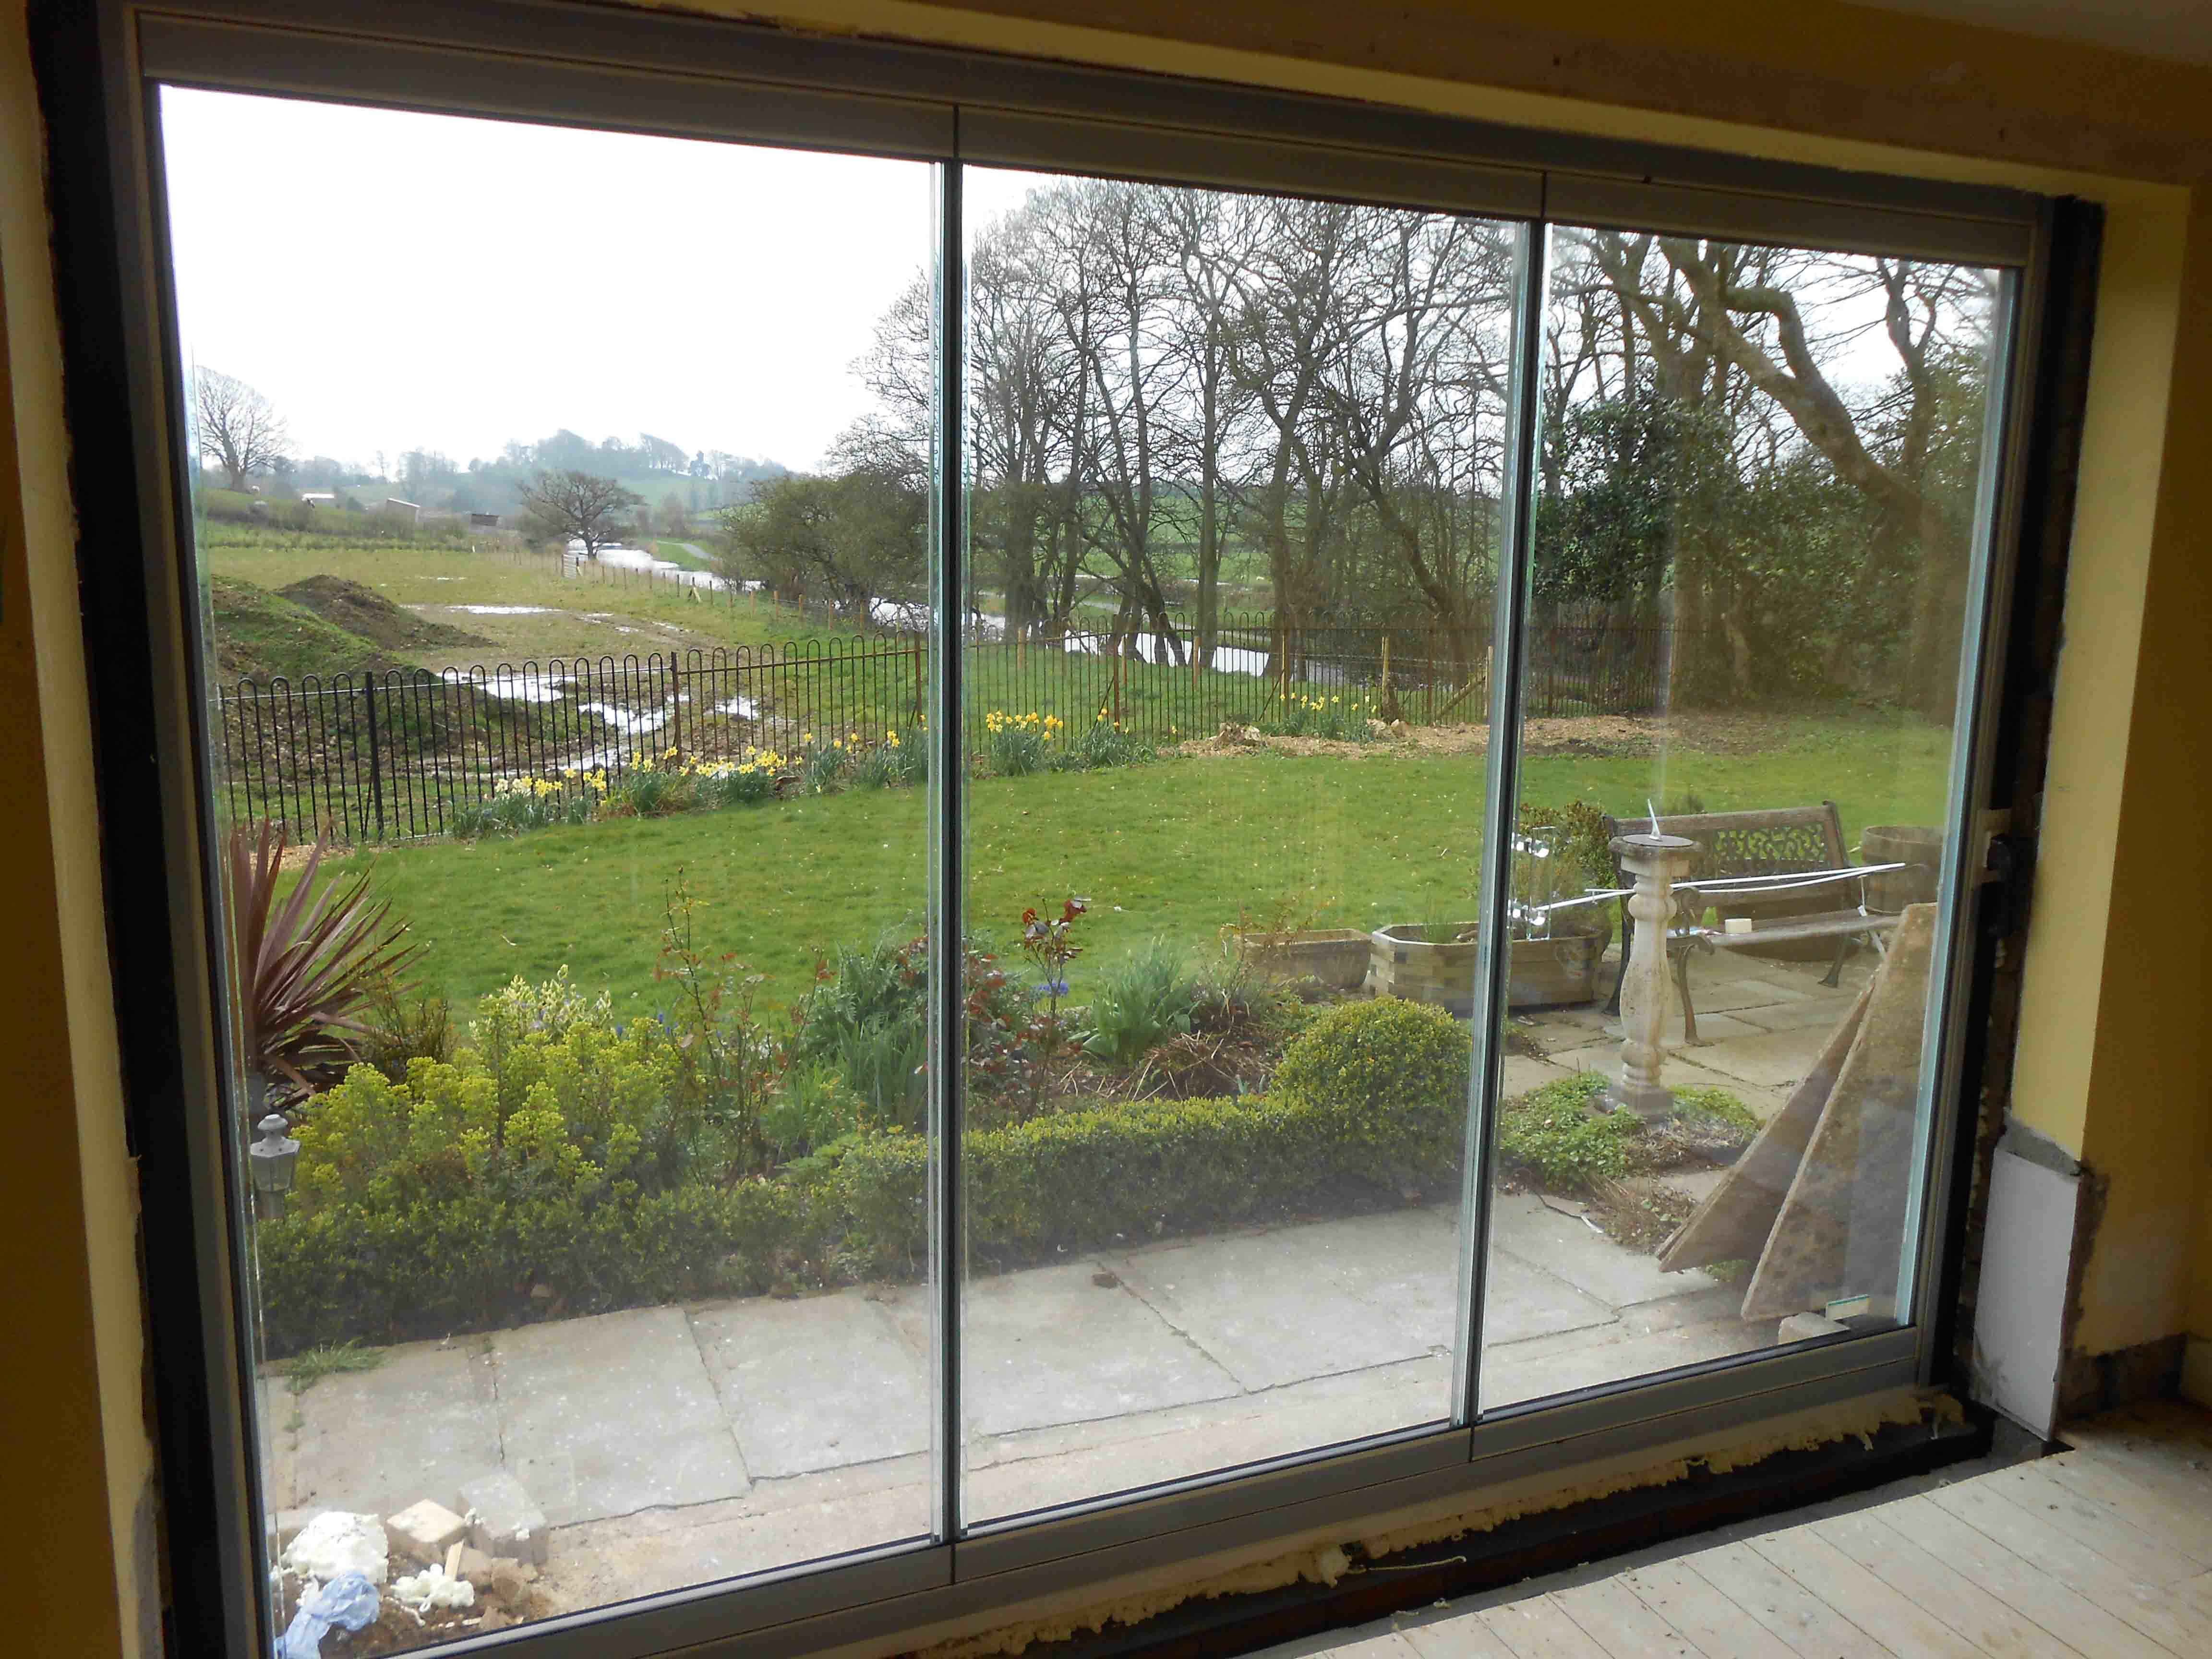 How frameless bifolds look better fgc for Double glazed patio doors